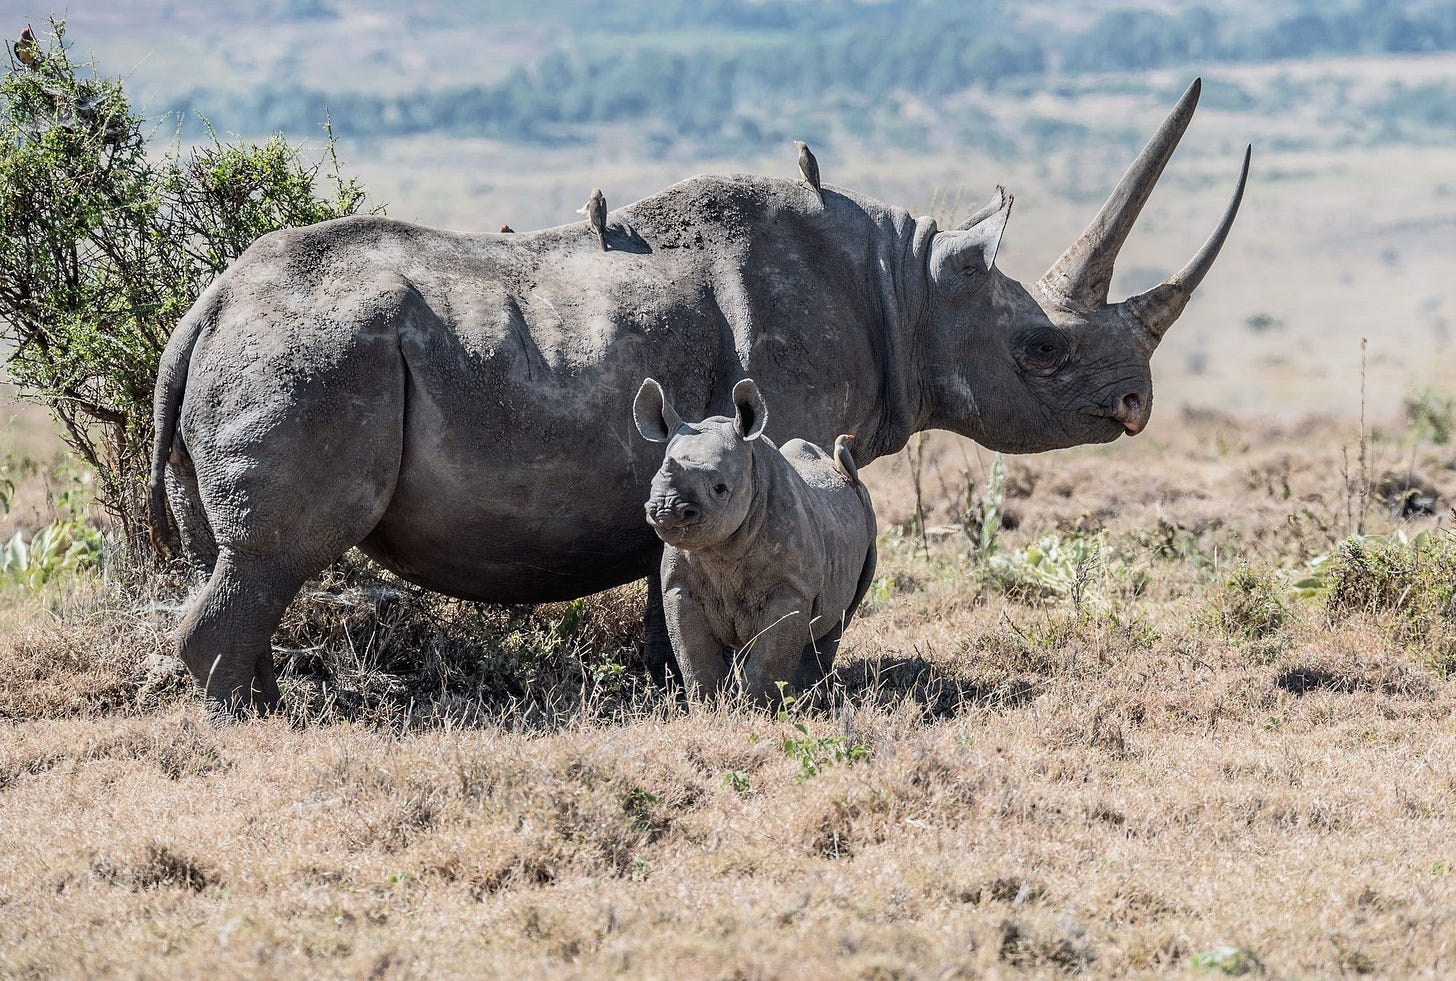 Black rhinos. A mother and baby black rhino in Lewa Conservancy ...